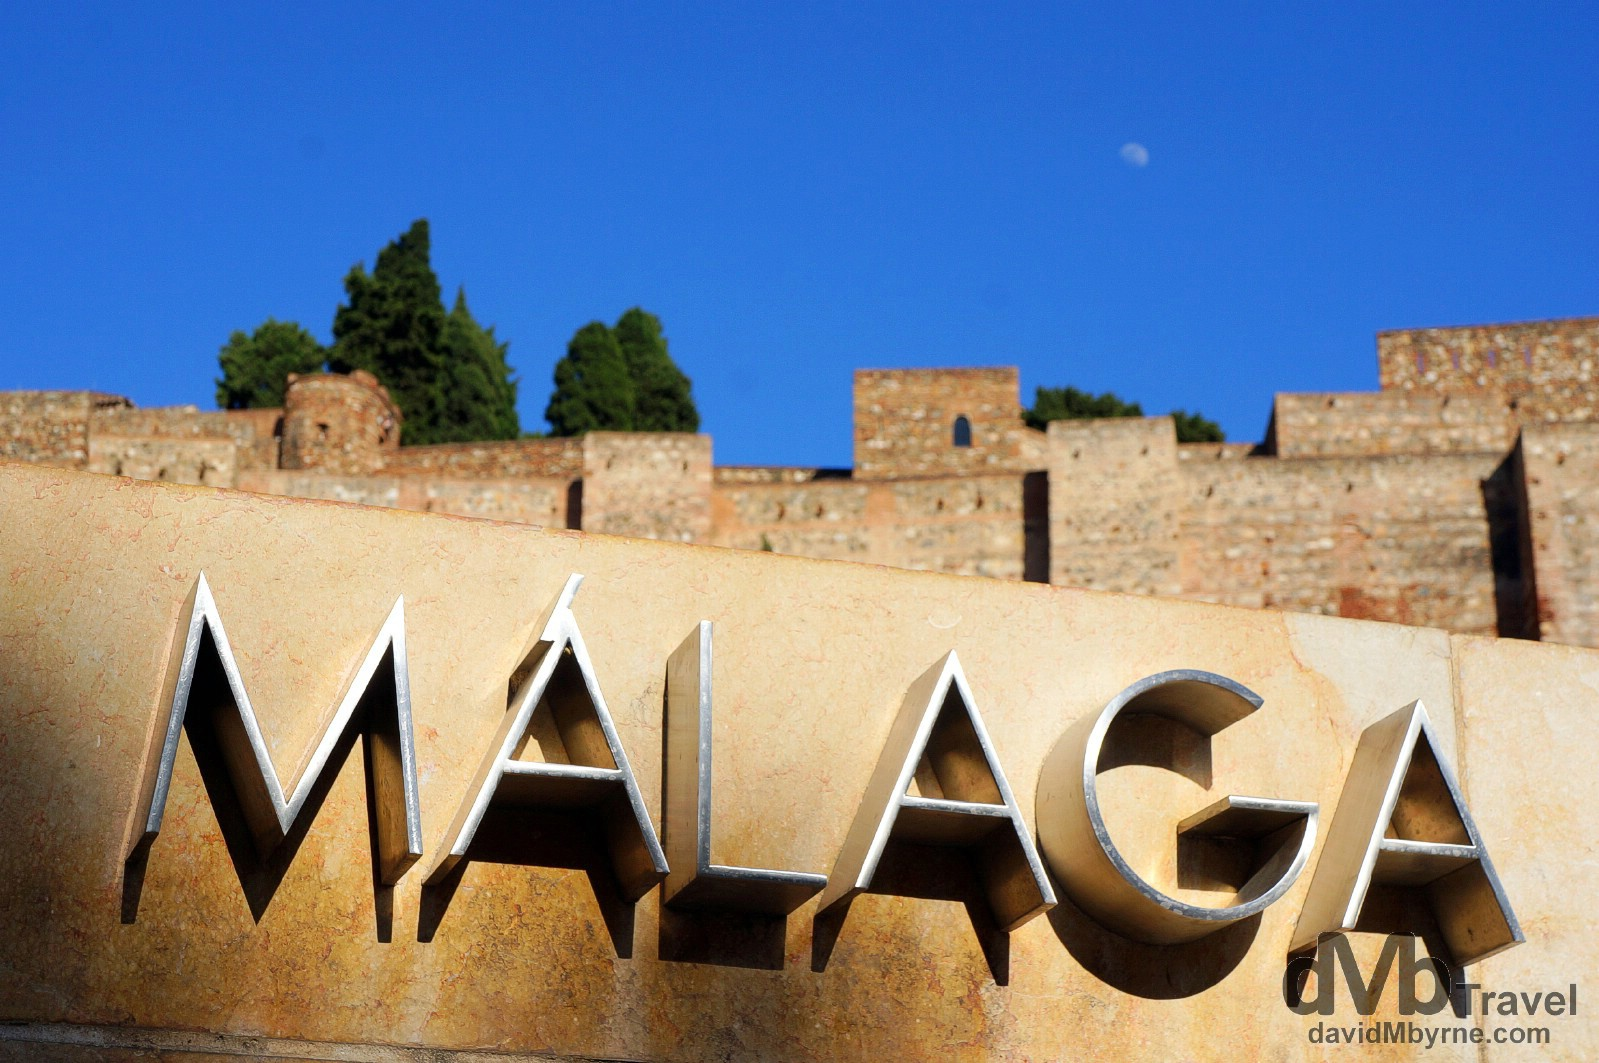 A sign fronting the Roman theater in central Malaga. Andalusia, Spain. June 8th, 2014.